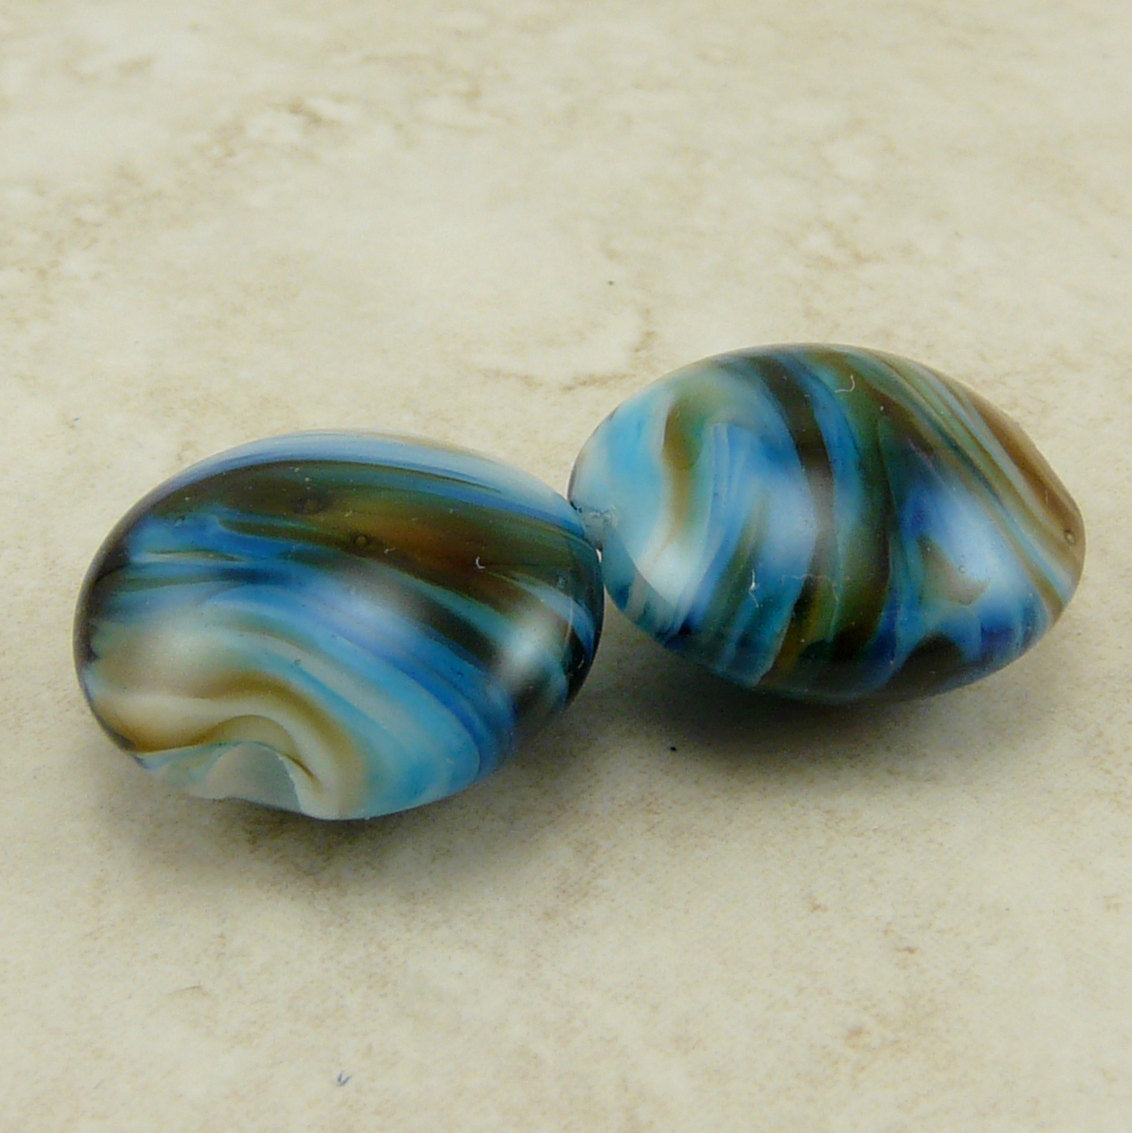 Earth Sea Pair - Lentil Lampwork Bead Pair by Dragynsfyre Designs - SRA